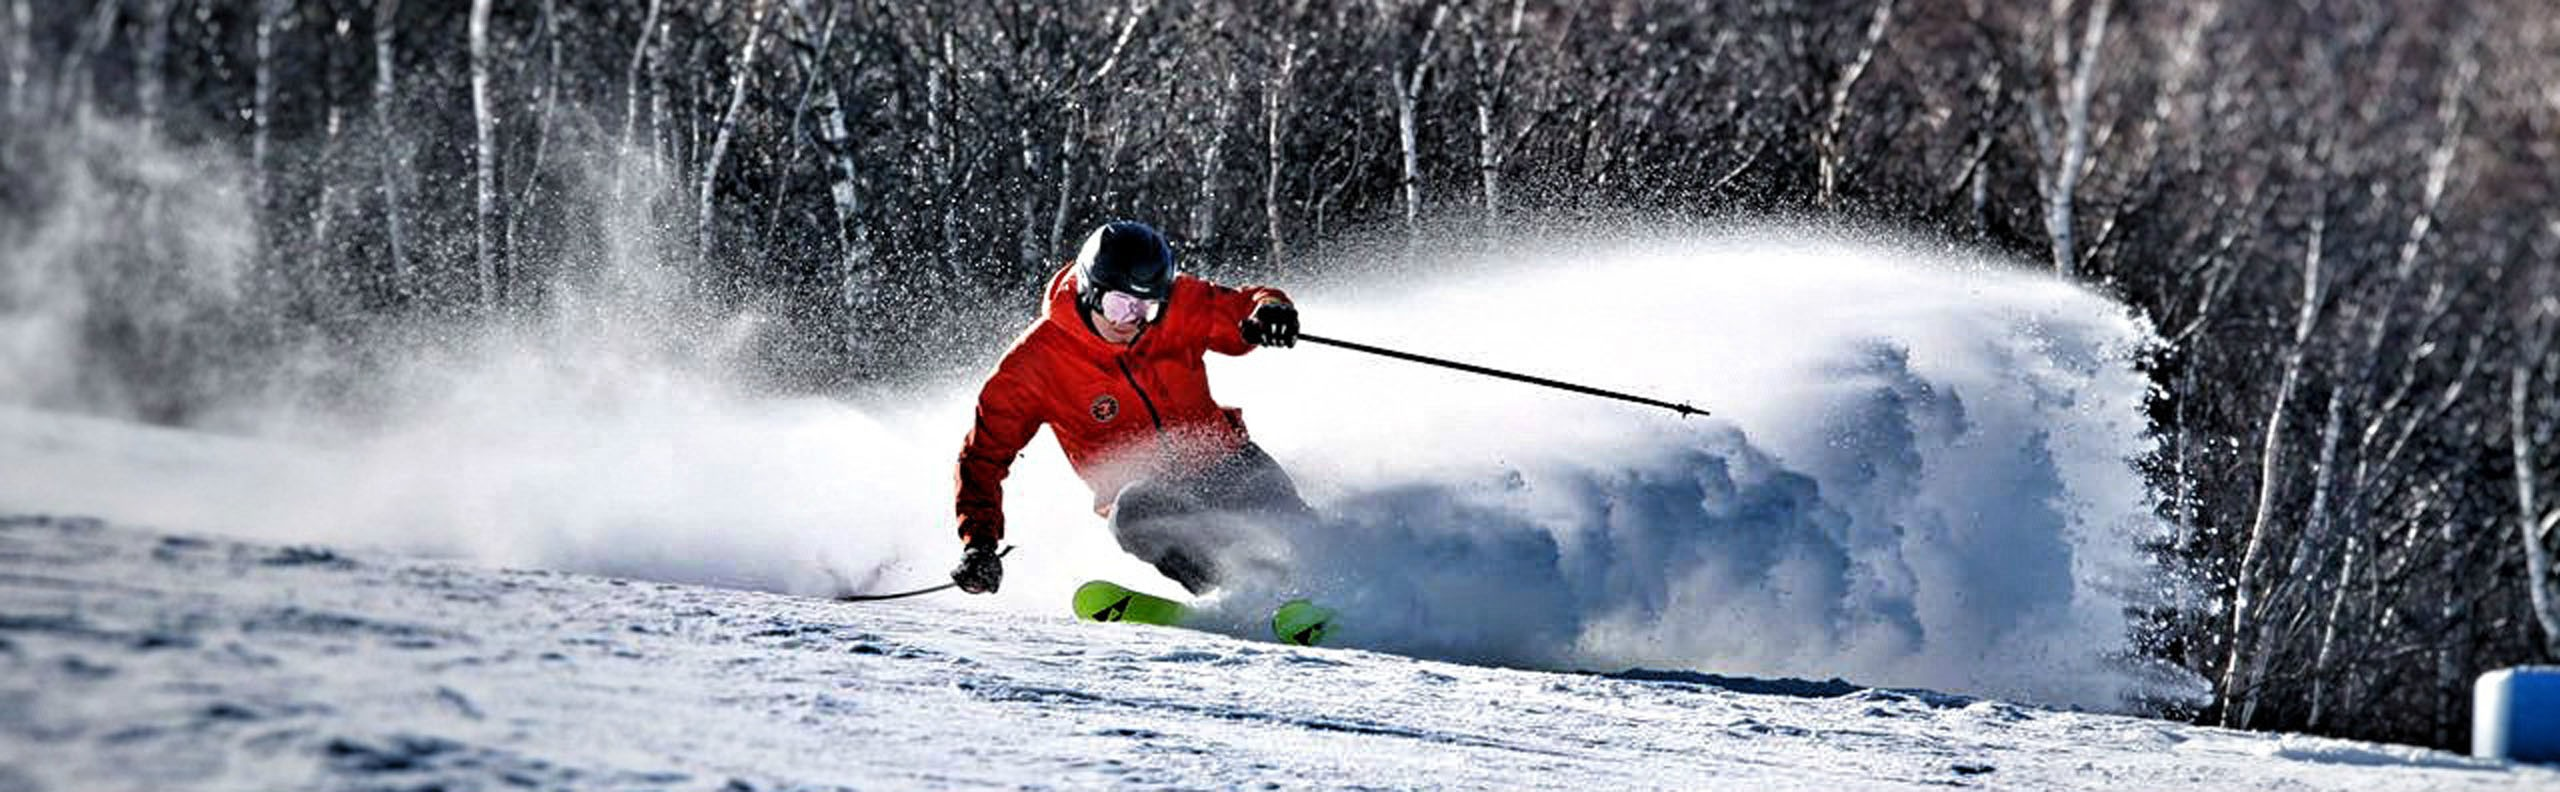 6 Days Beijing Winter Tour with Skiing in a 2022 Olympic Winter Games Venue